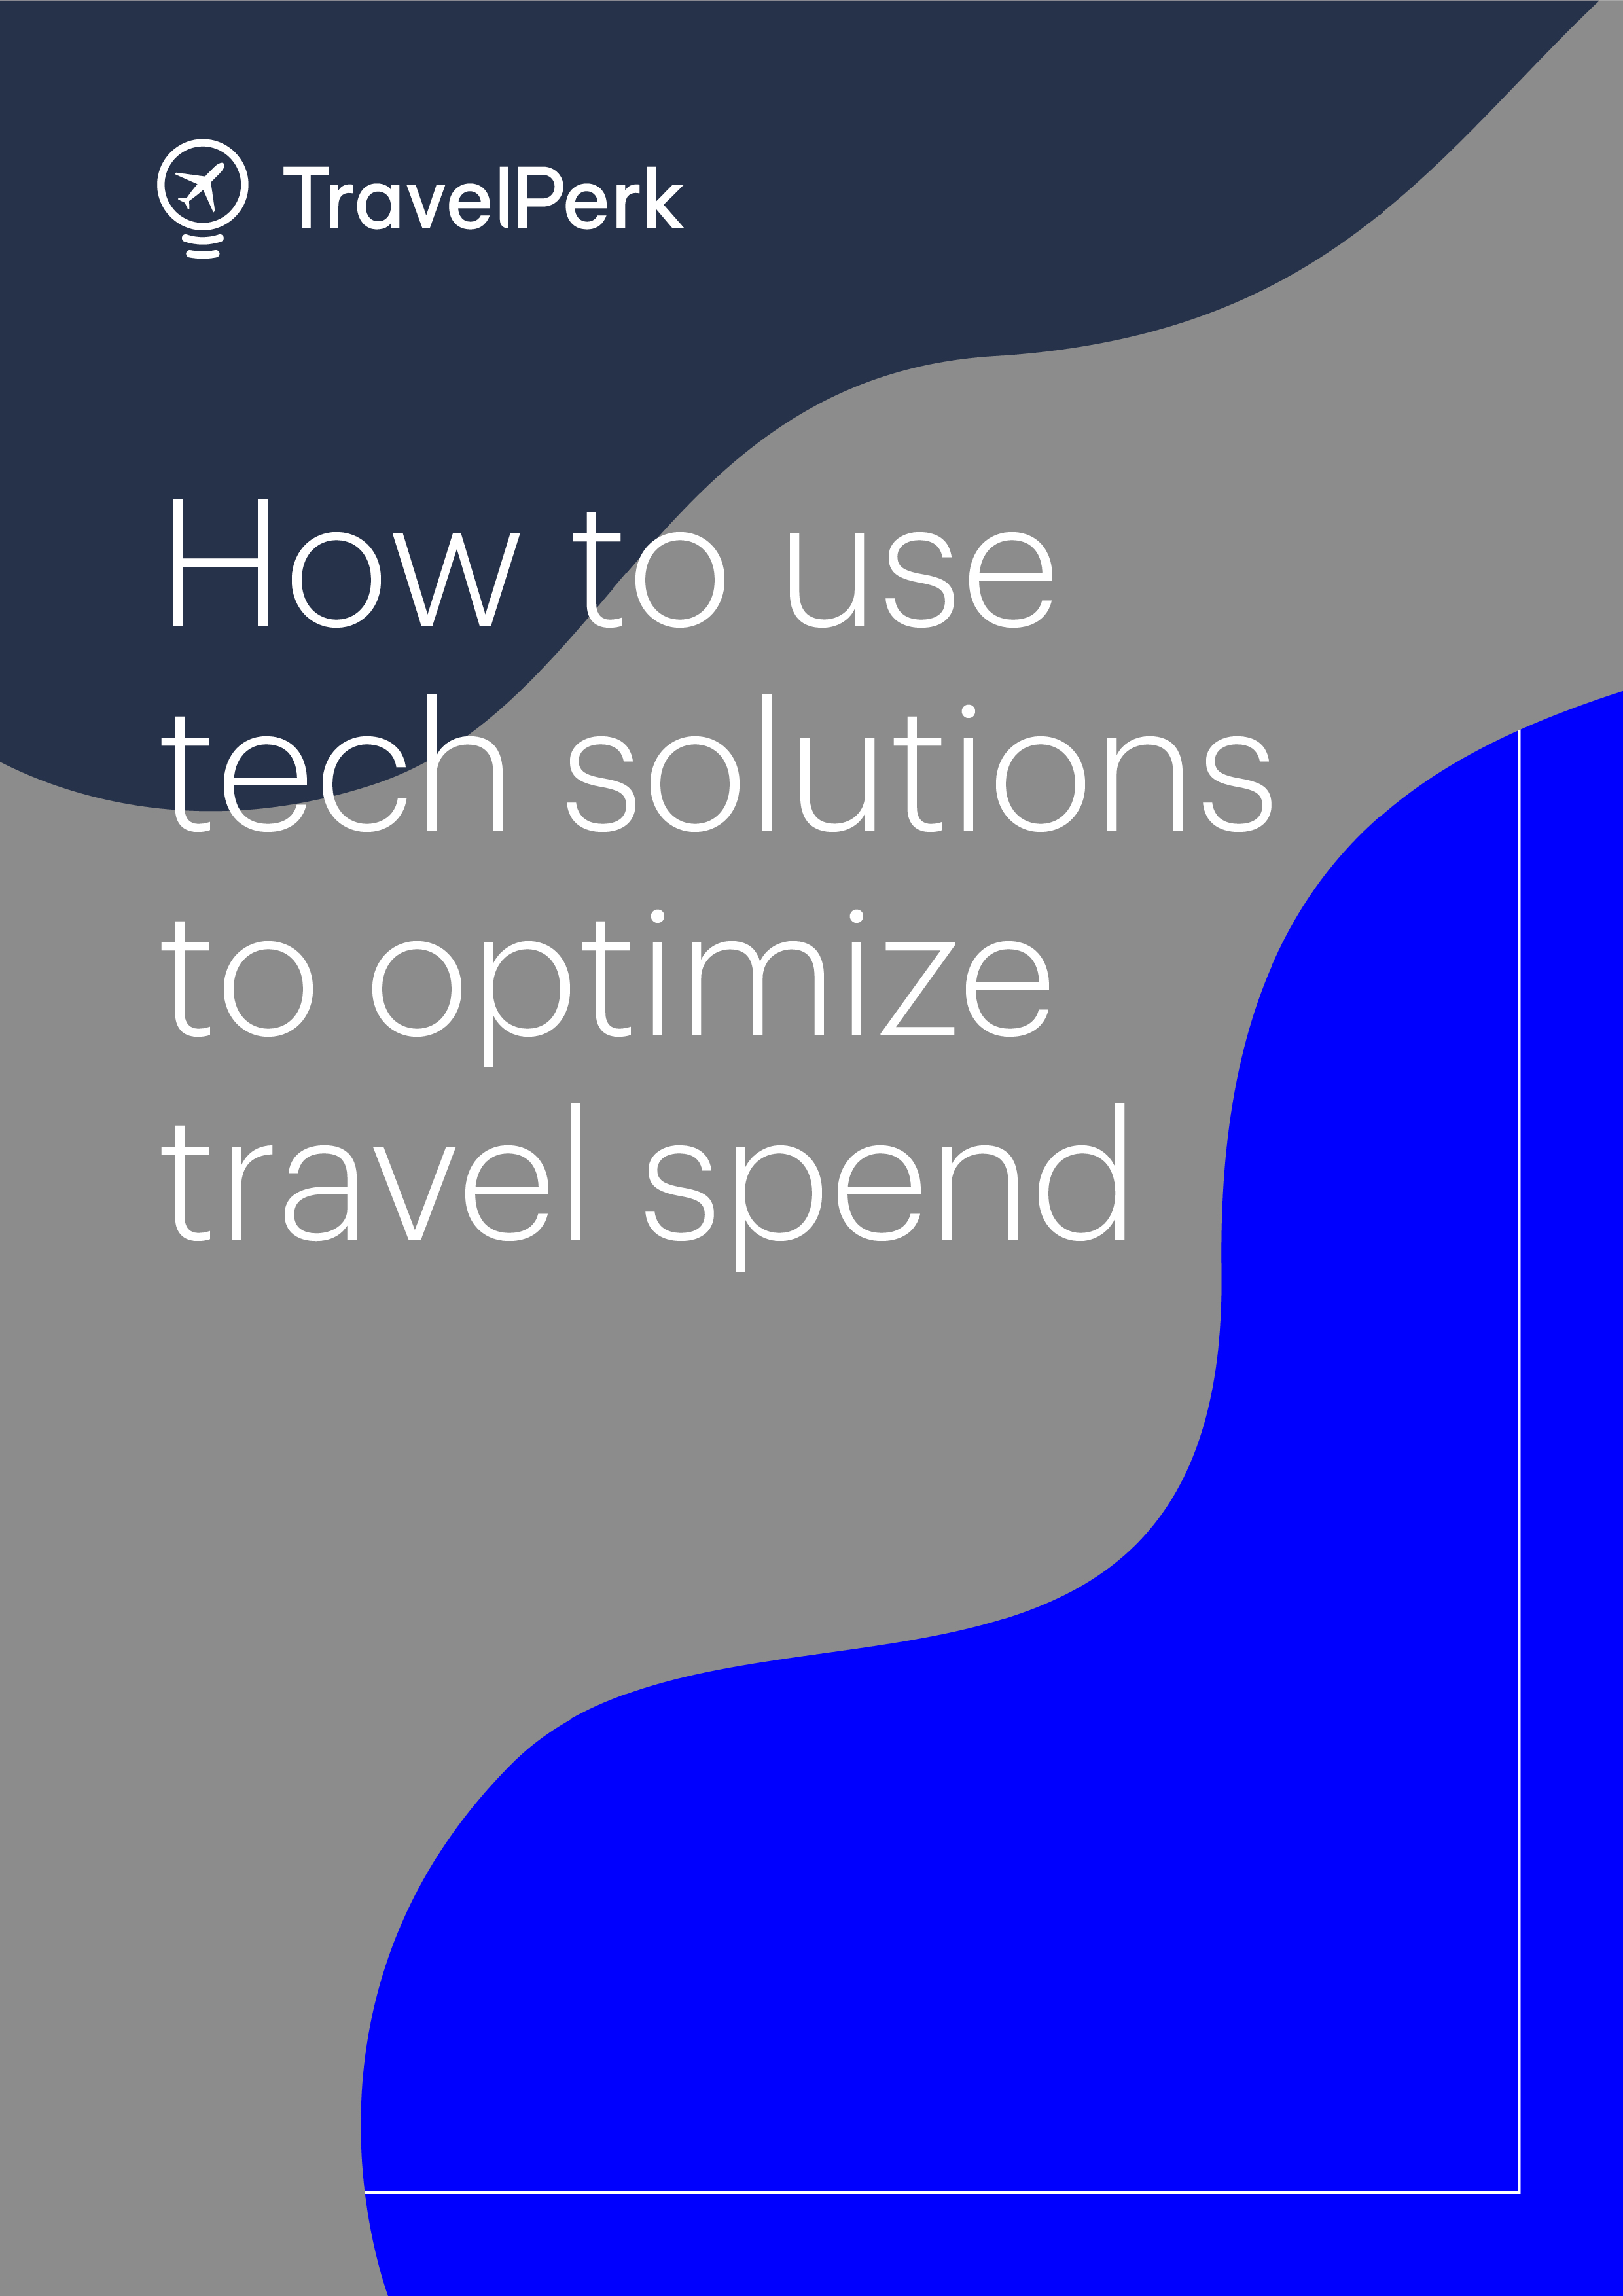 How to use tech solutions to optimize travel spend